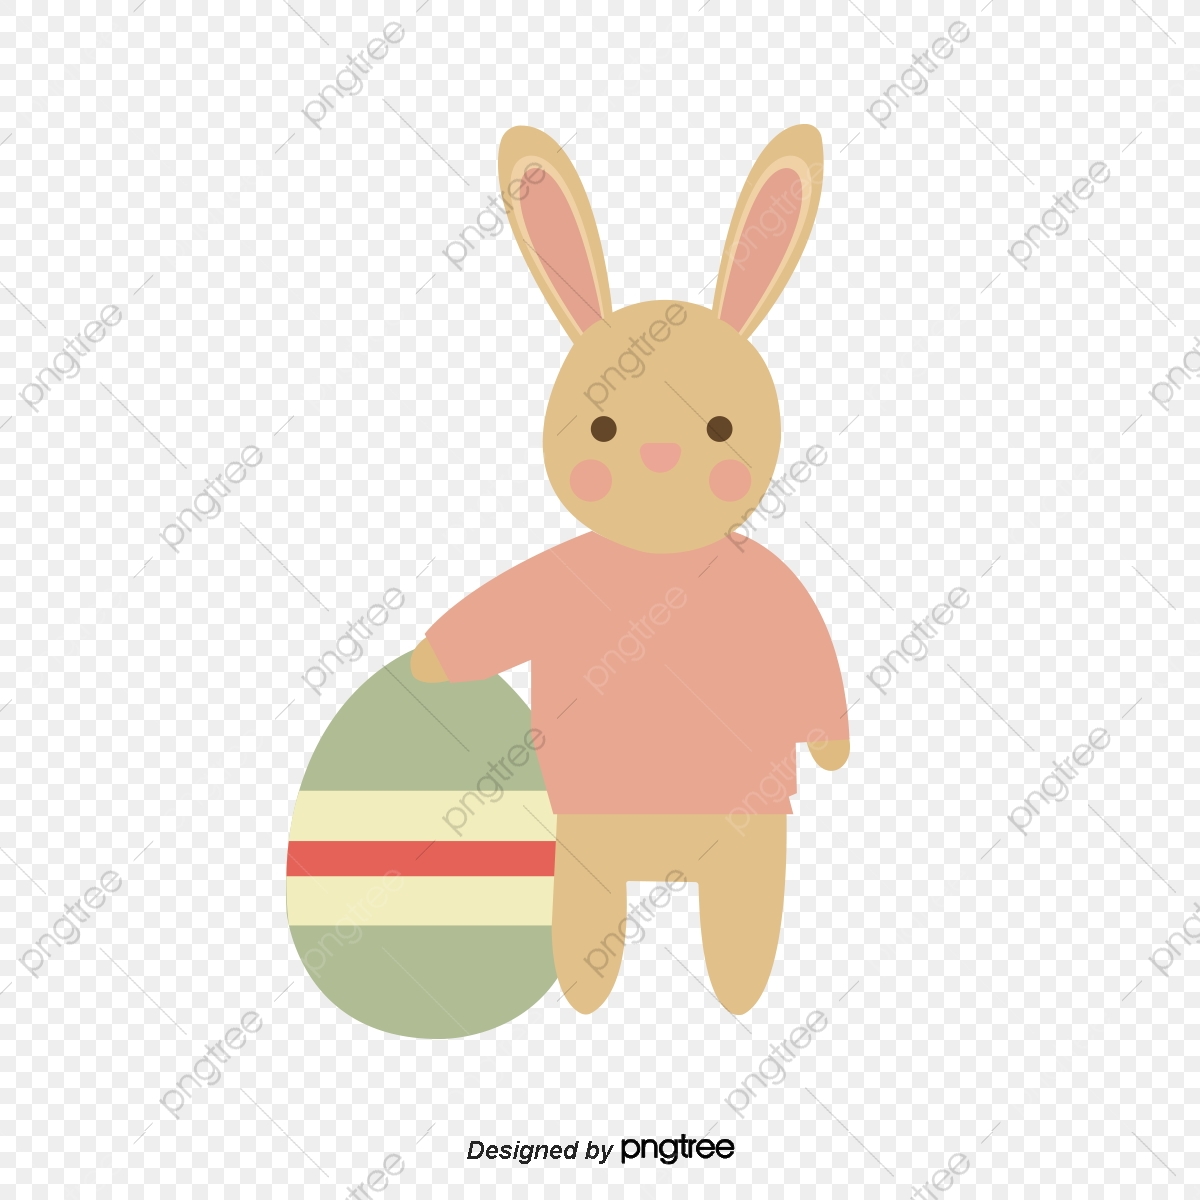 hight resolution of commercial use resource upgrade to premium plan and get license authorization upgradenow easter bunny easter clipart